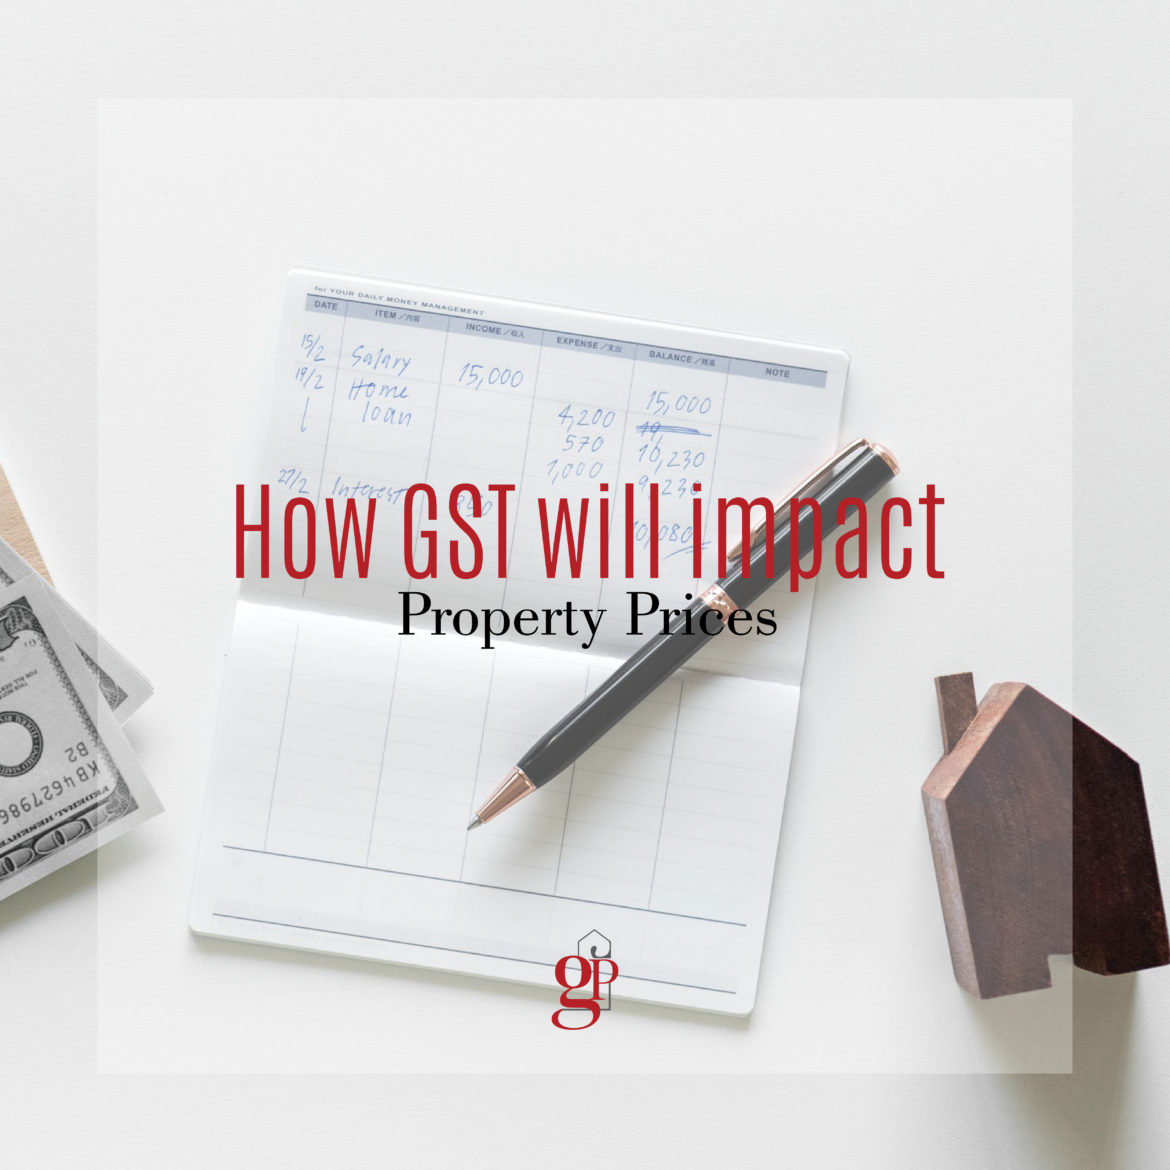 Blog - How GST Will Impact Property Prices